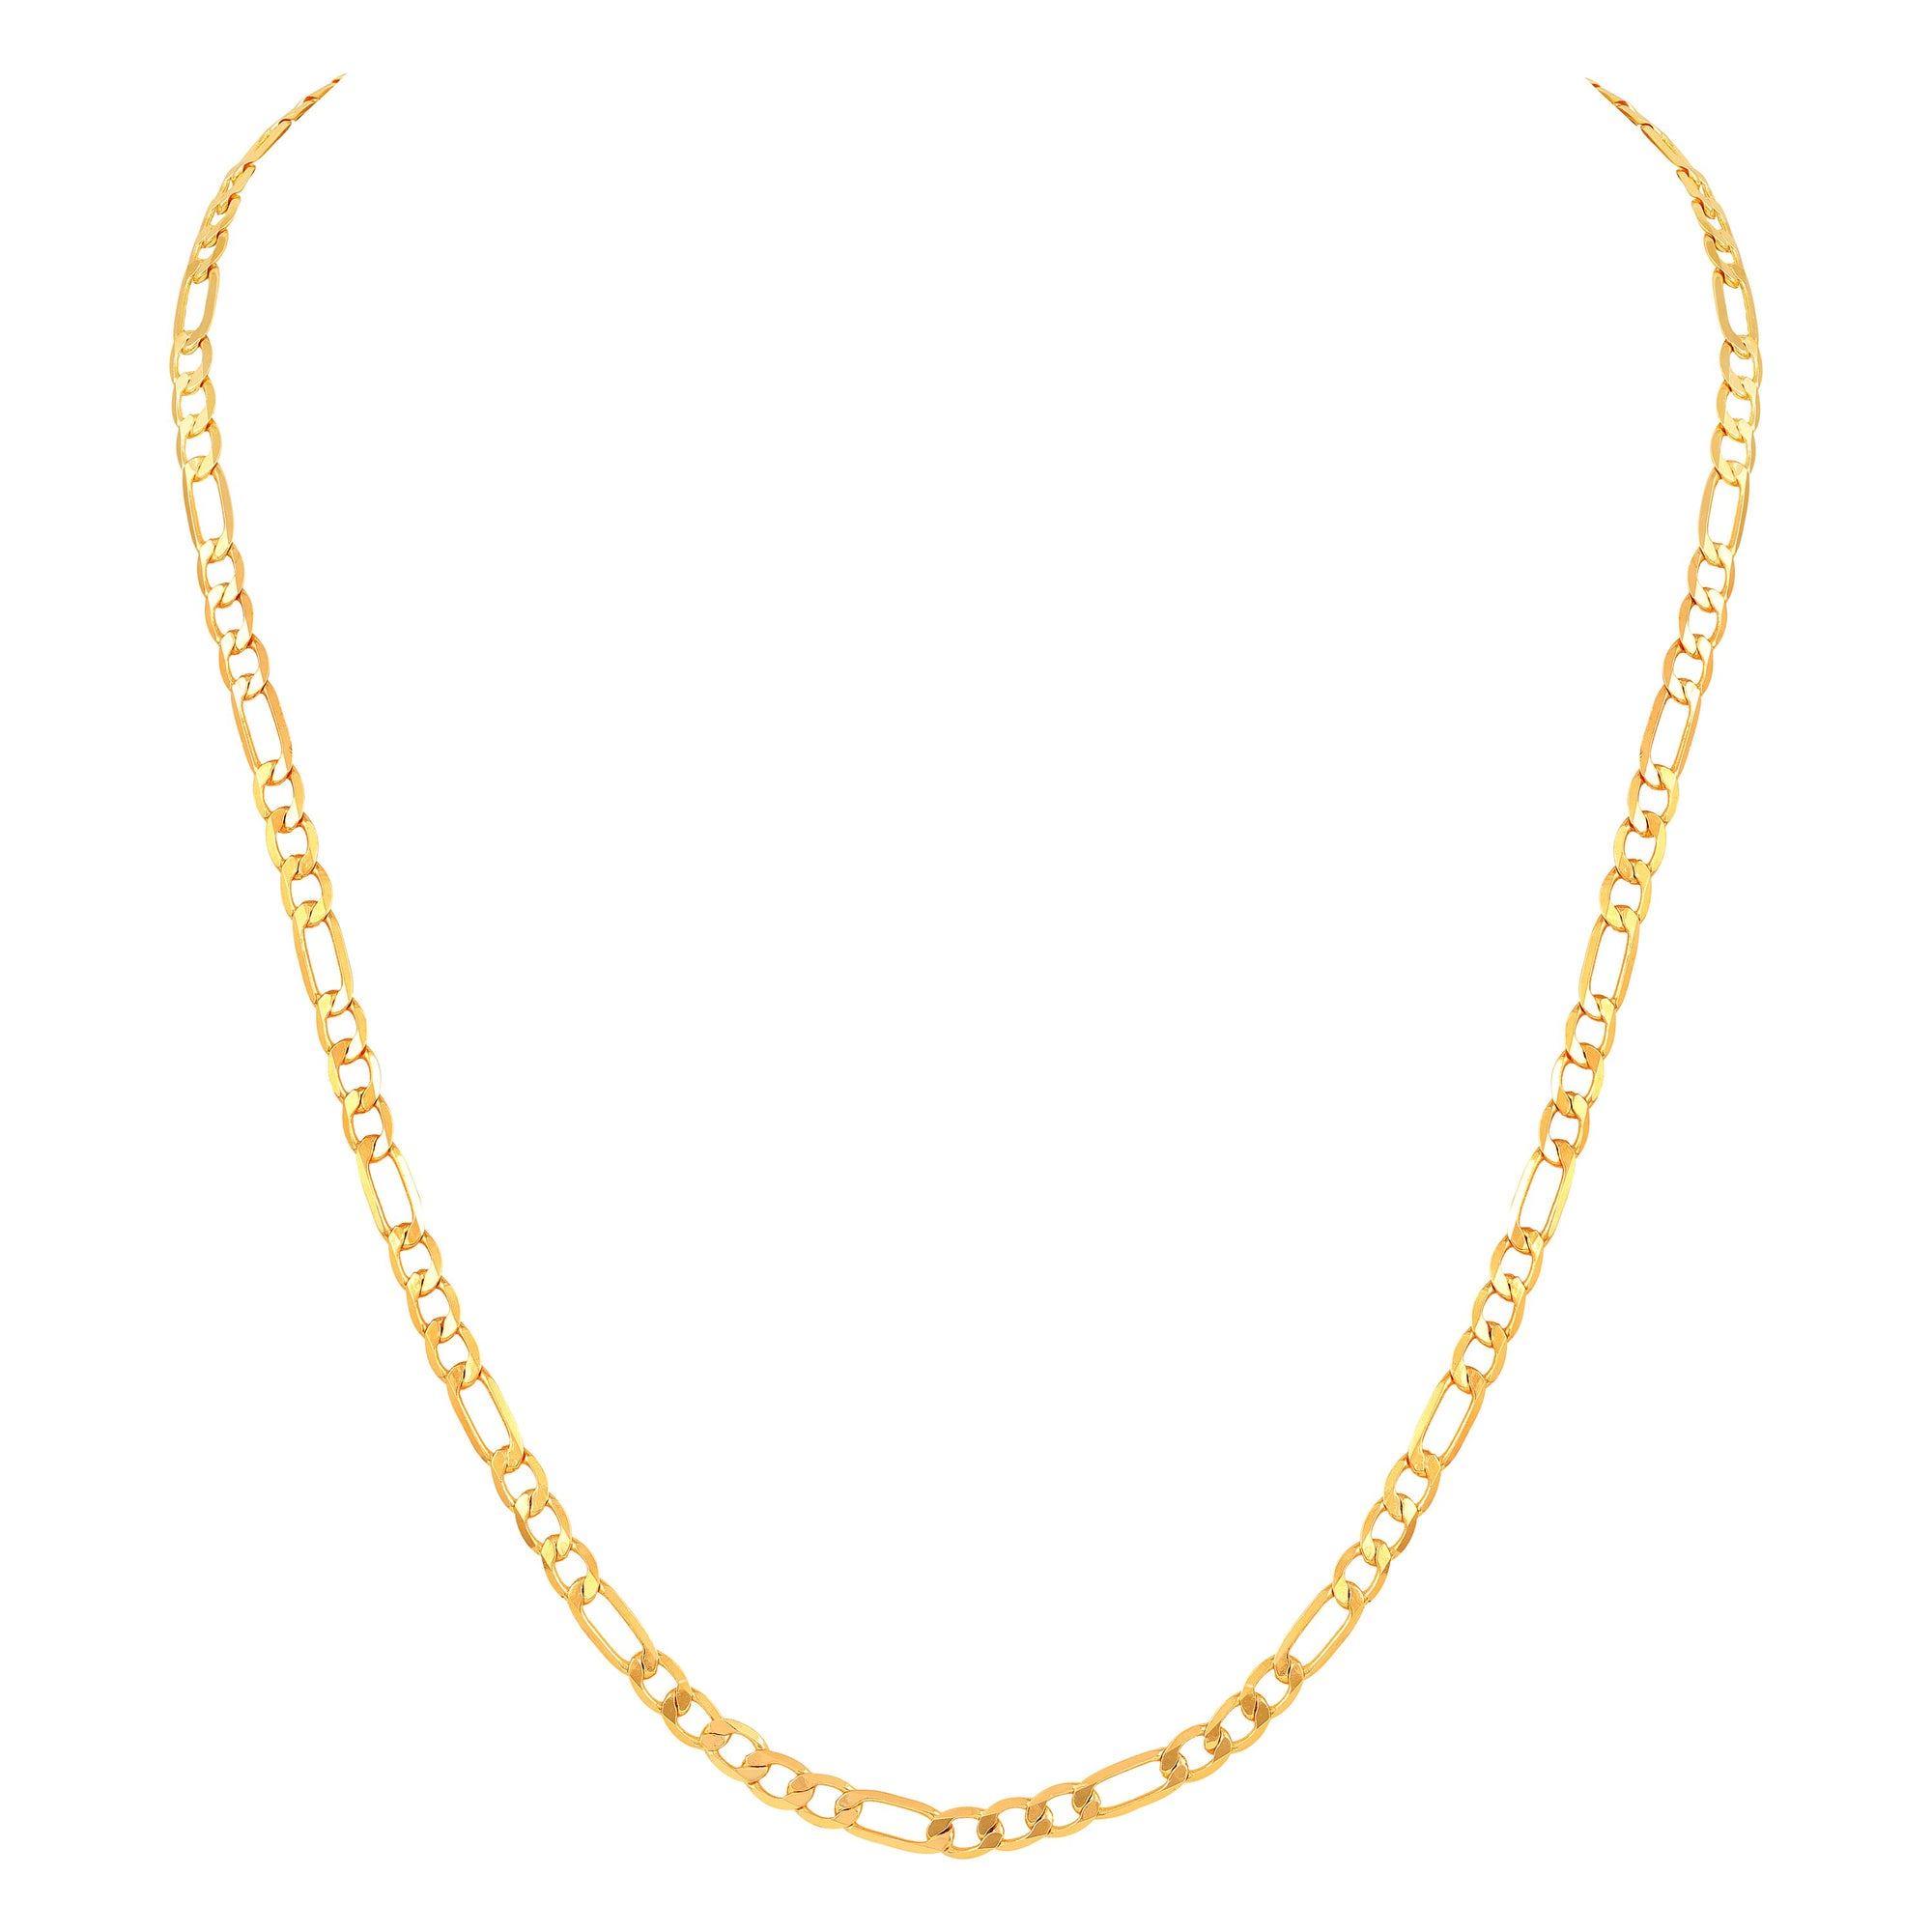 Asmitta Jewellery Brass Gold  Chain For Men Gold-  Brass Chain  -CH118